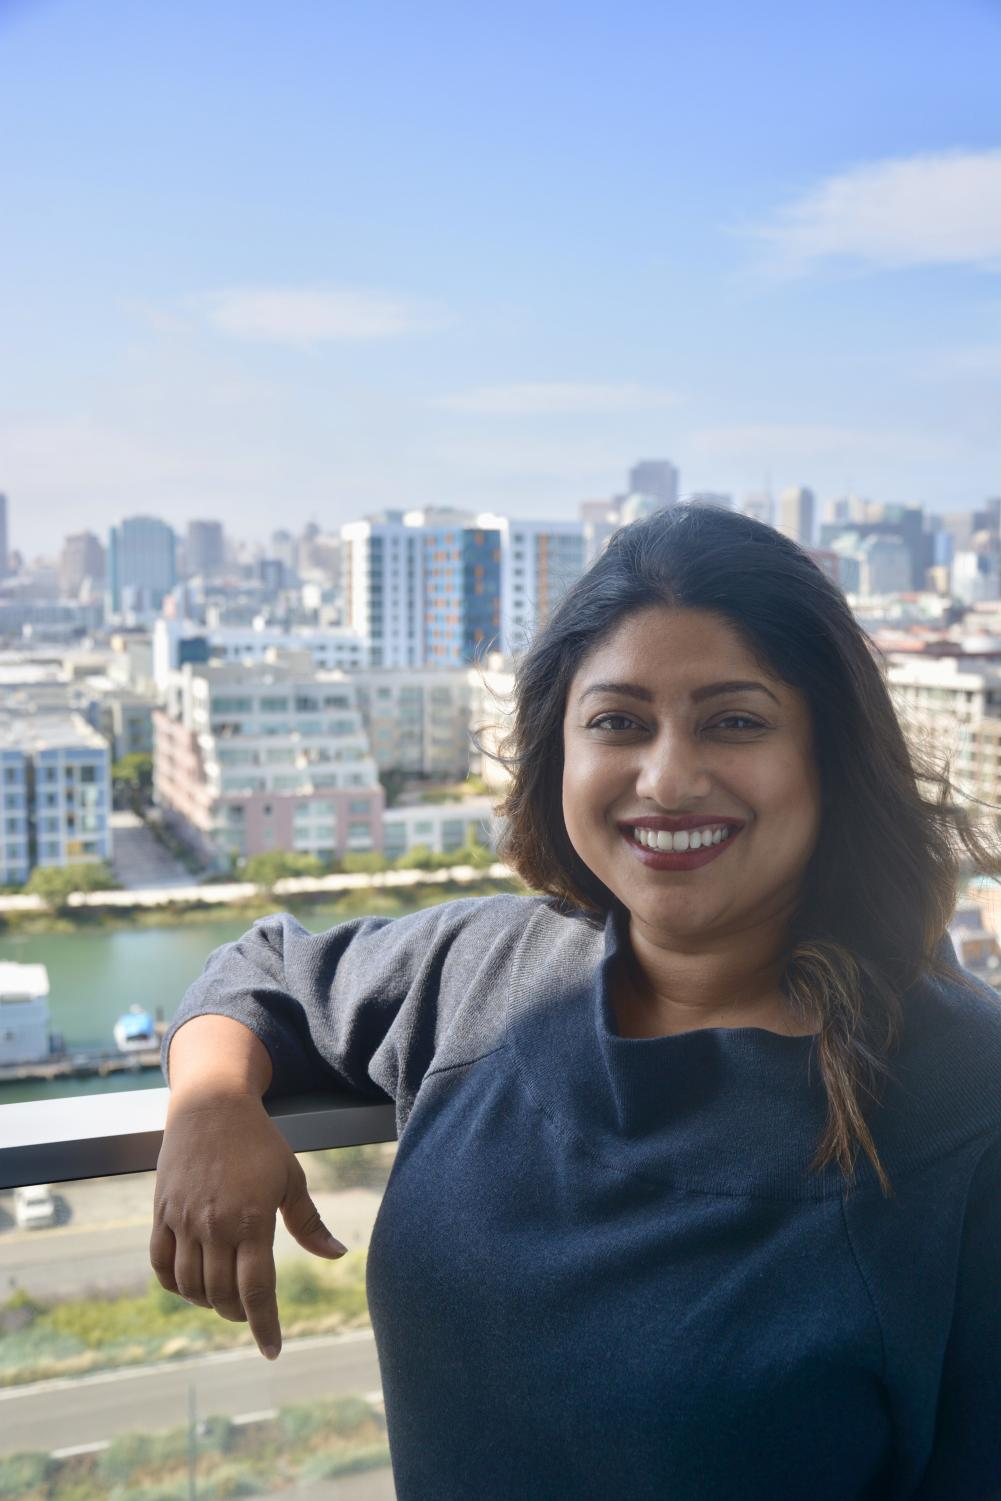 Cal alumna Kavita Baliga, Class of 2000, is a world renowned Western classical singer who has founded the music startup Design Music Entertainment.